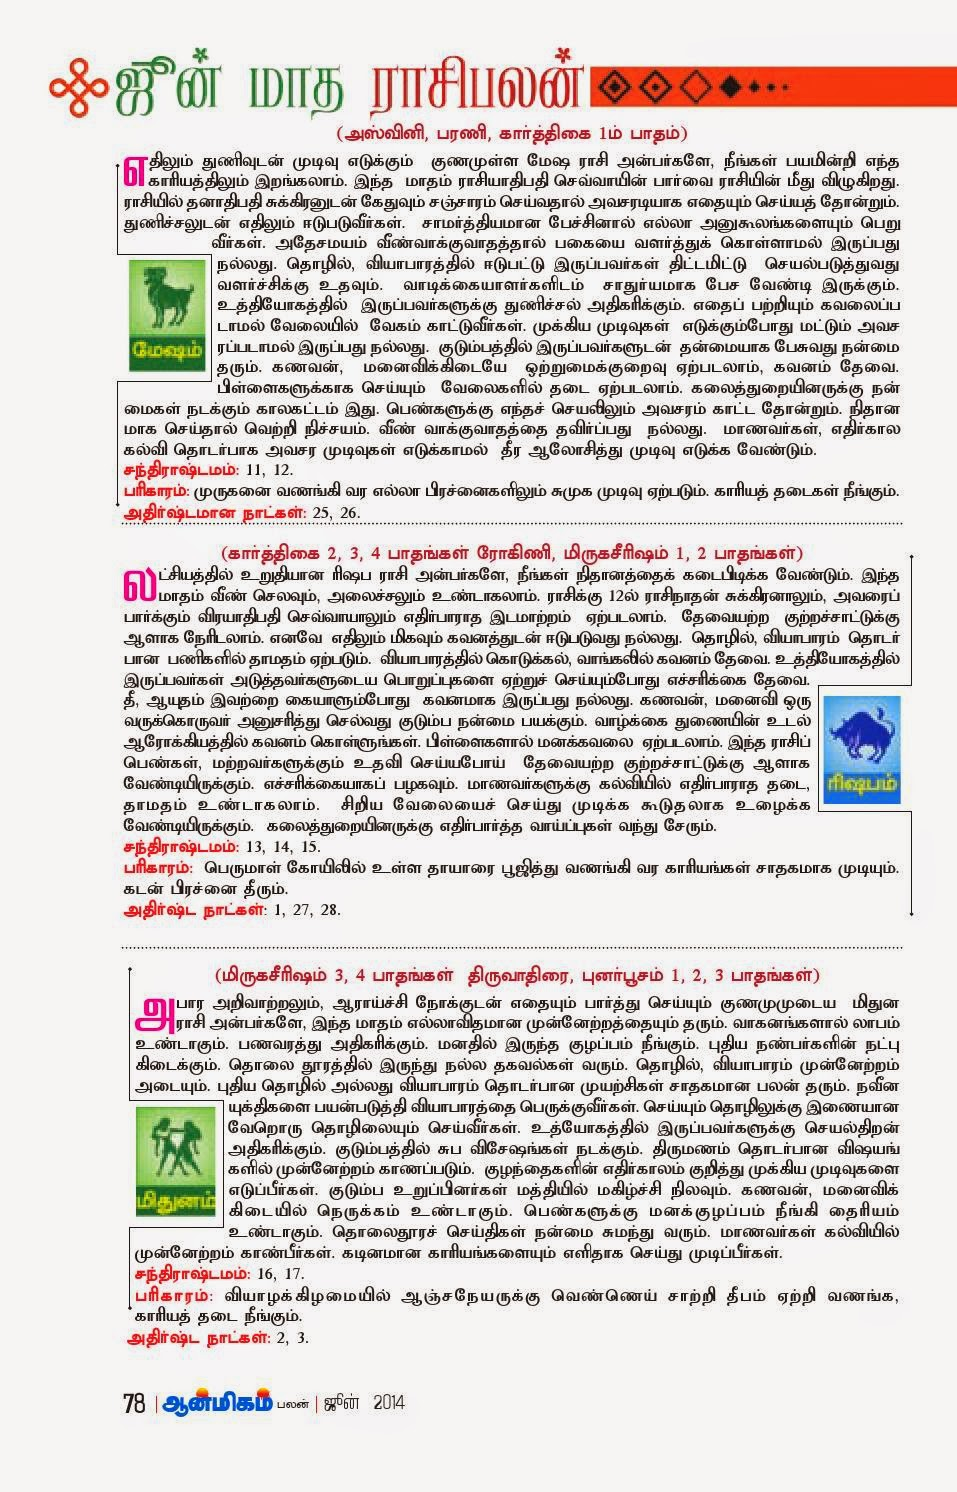 Read Astrological Prediction with Pariharam in Tamil for the month of